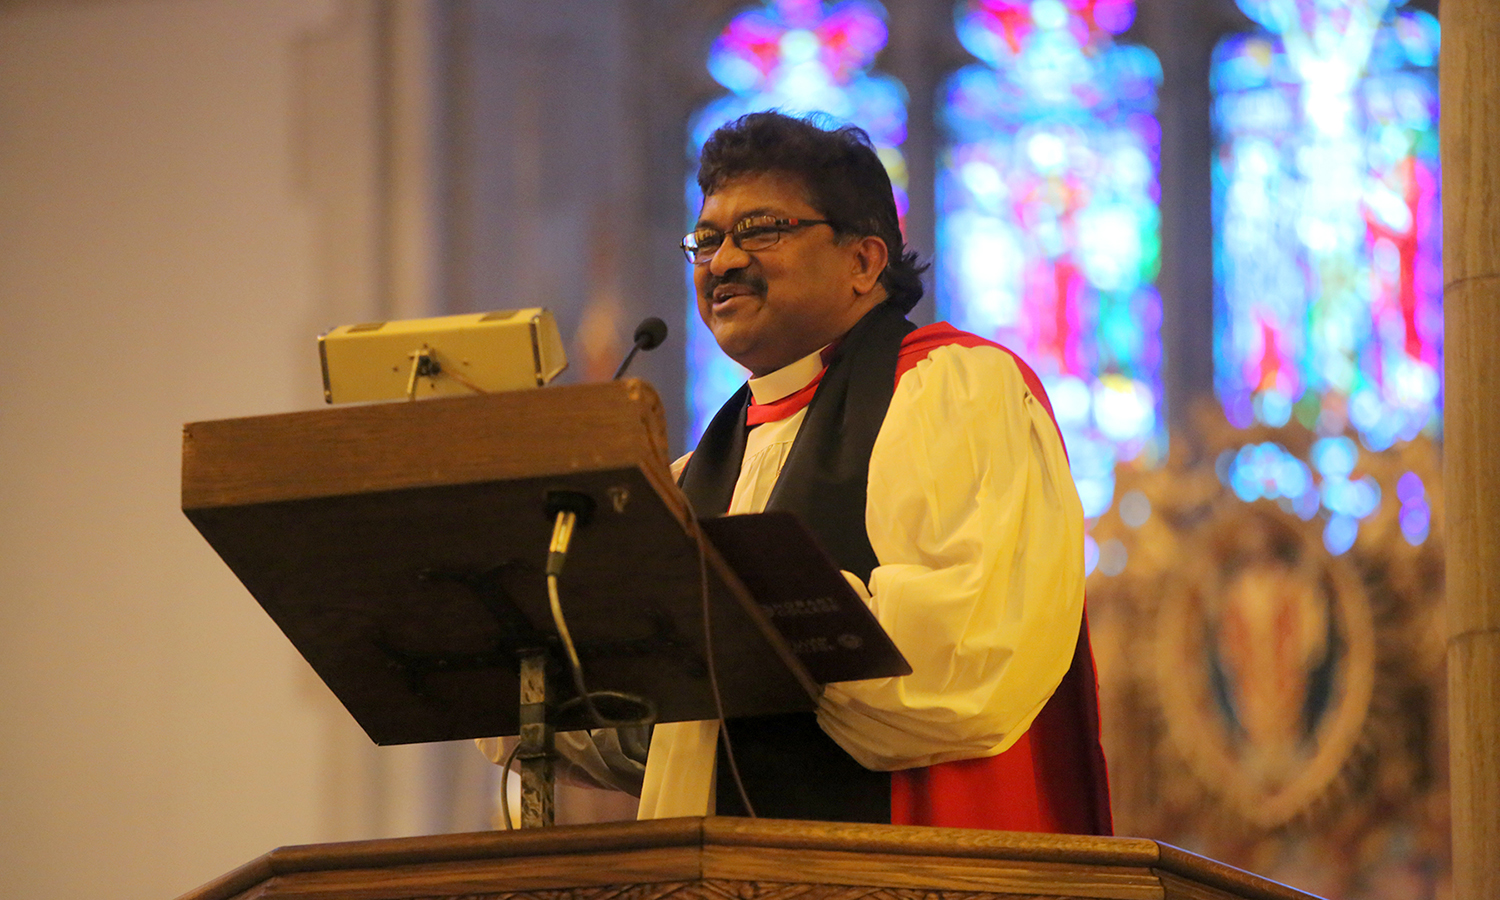 The Rt. Rev. Prince G. Singh, Bishop of the Episcopal Diocese of Rochester and HWS Trustee, makes the keynote address during the 2017 Baccalaureate celebration in Trinity Church.